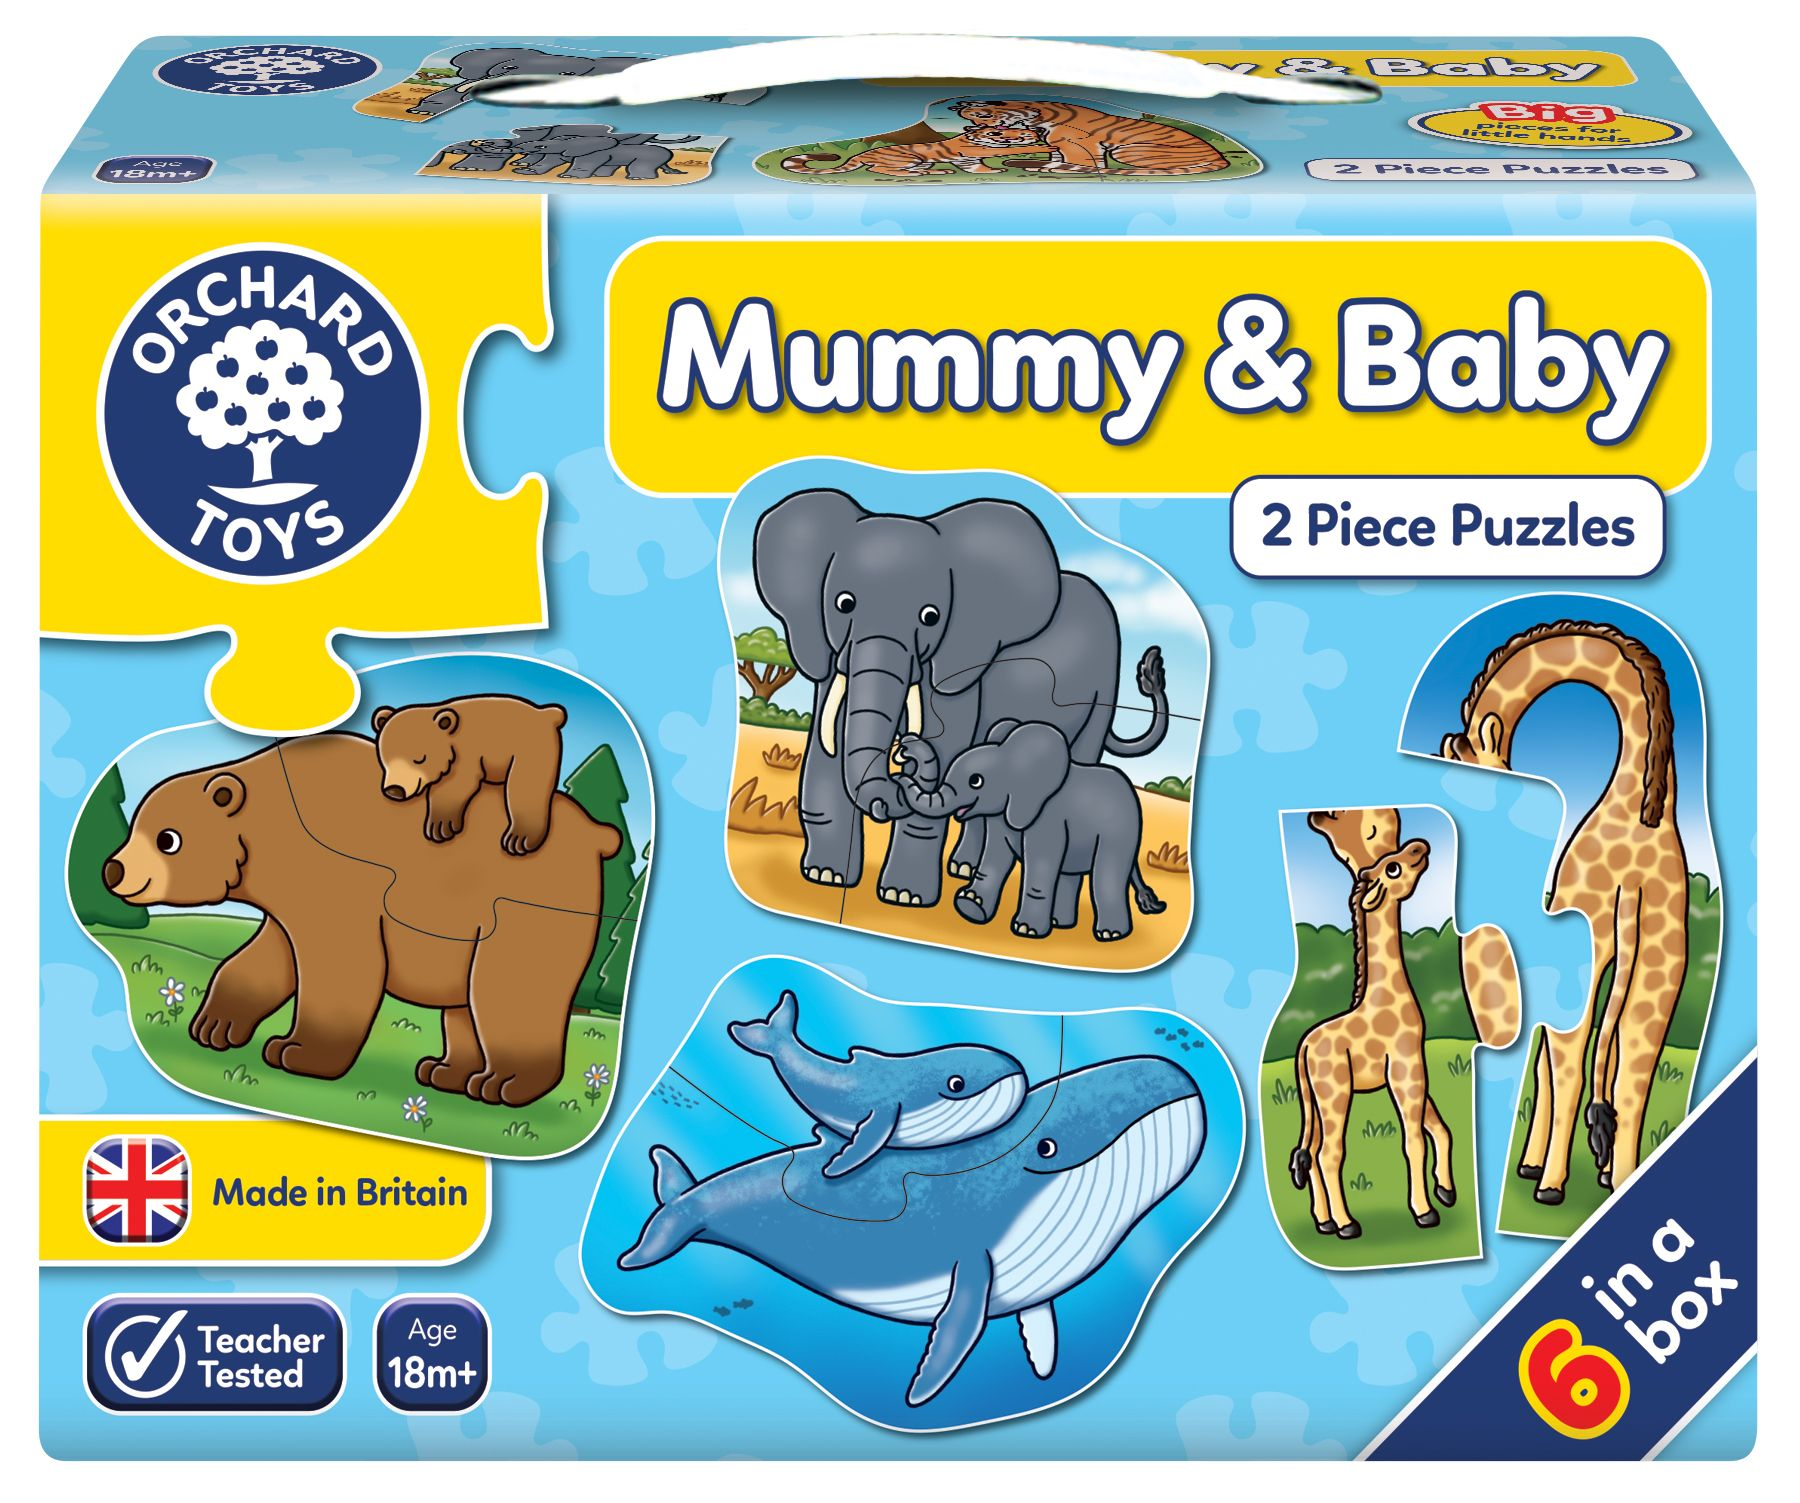 Mummy and Baby by Orchard Toys